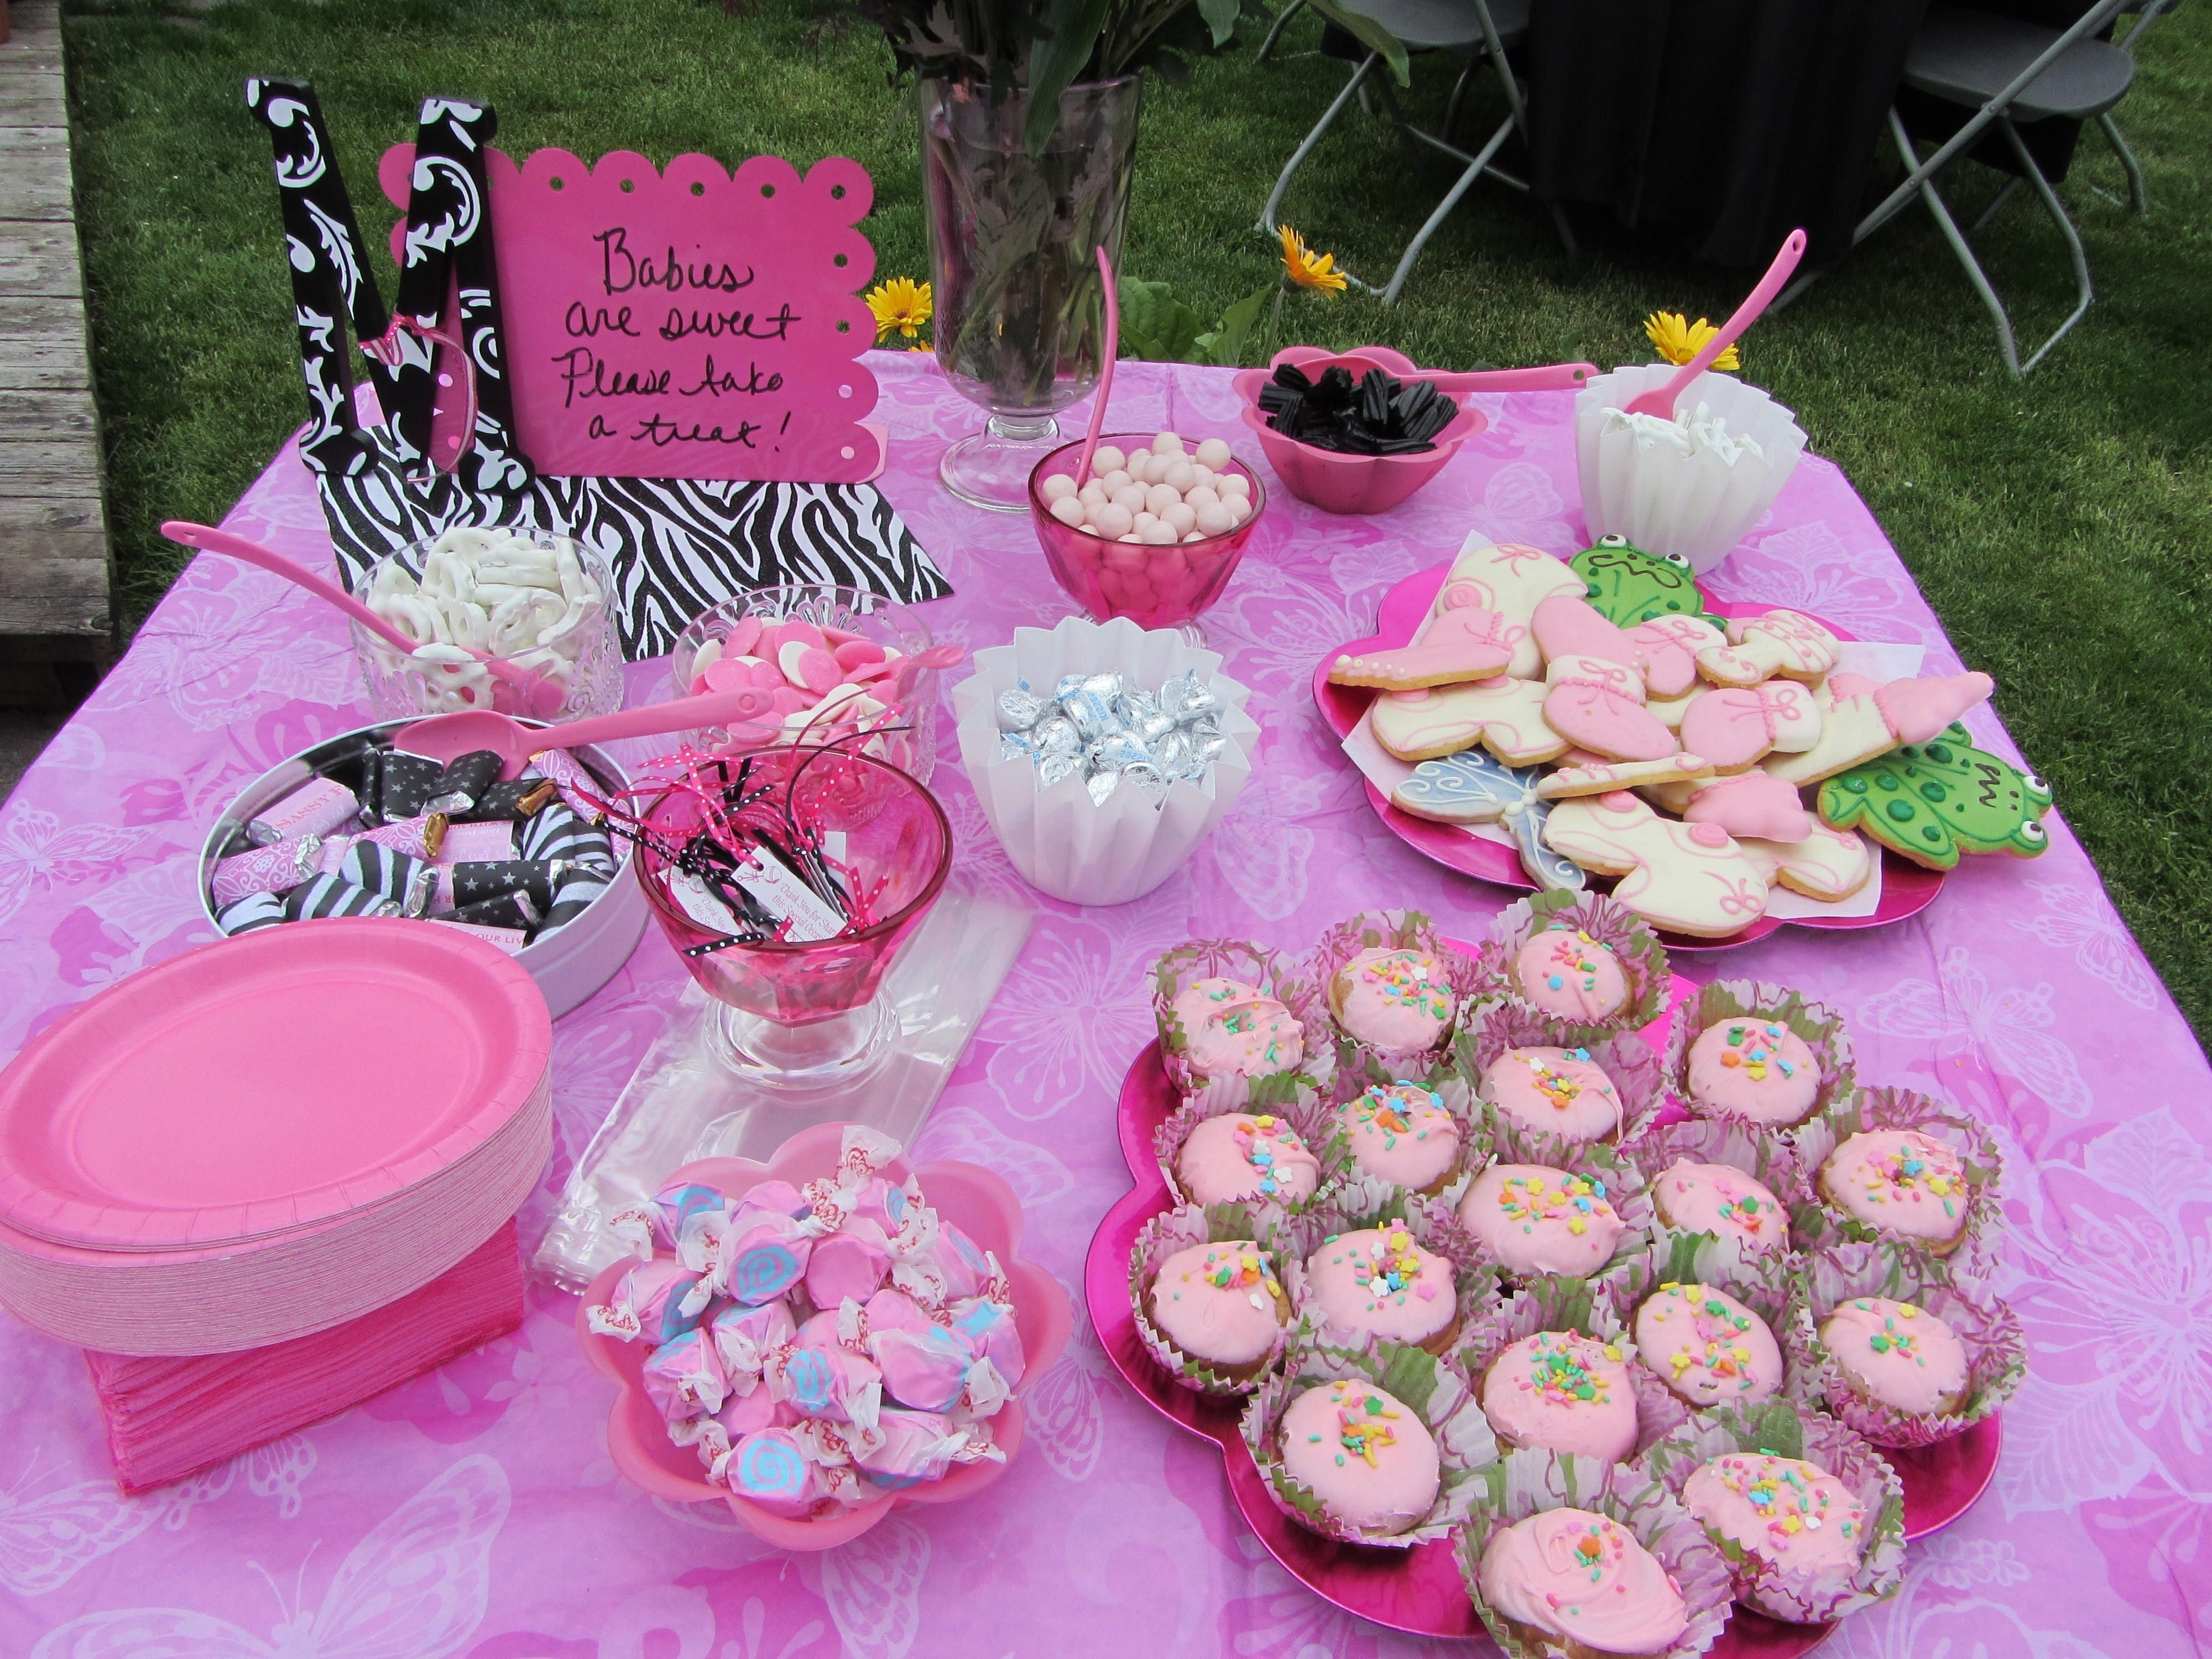 10 Unique Baby Shower Food Ideas For A Girl girl baby shower food baby shower sweet treats baby shower 2020